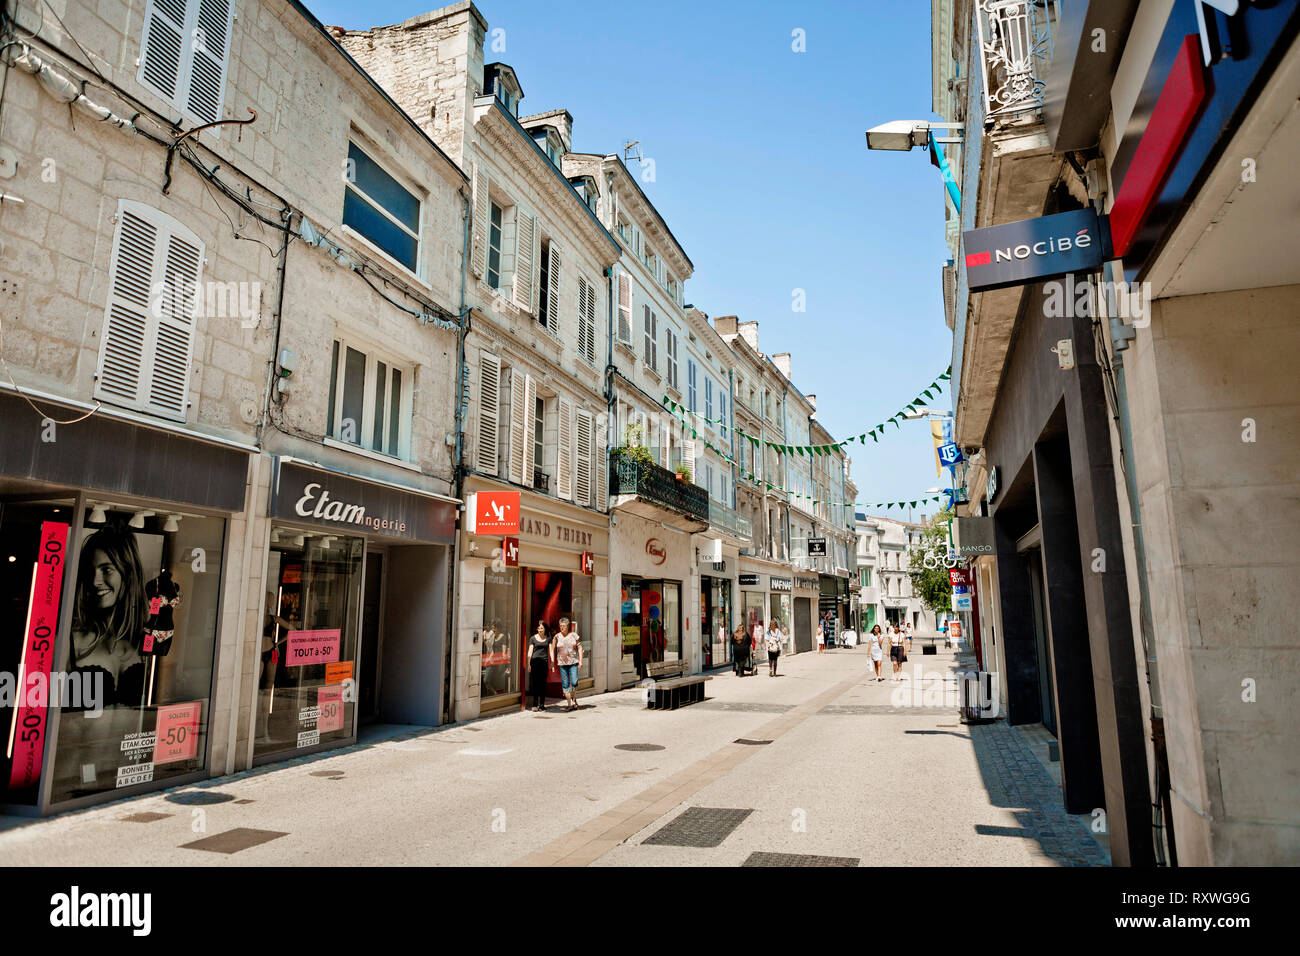 Un Jardin Sur Le Toit Nocibe niort town in france photos & niort town in france images